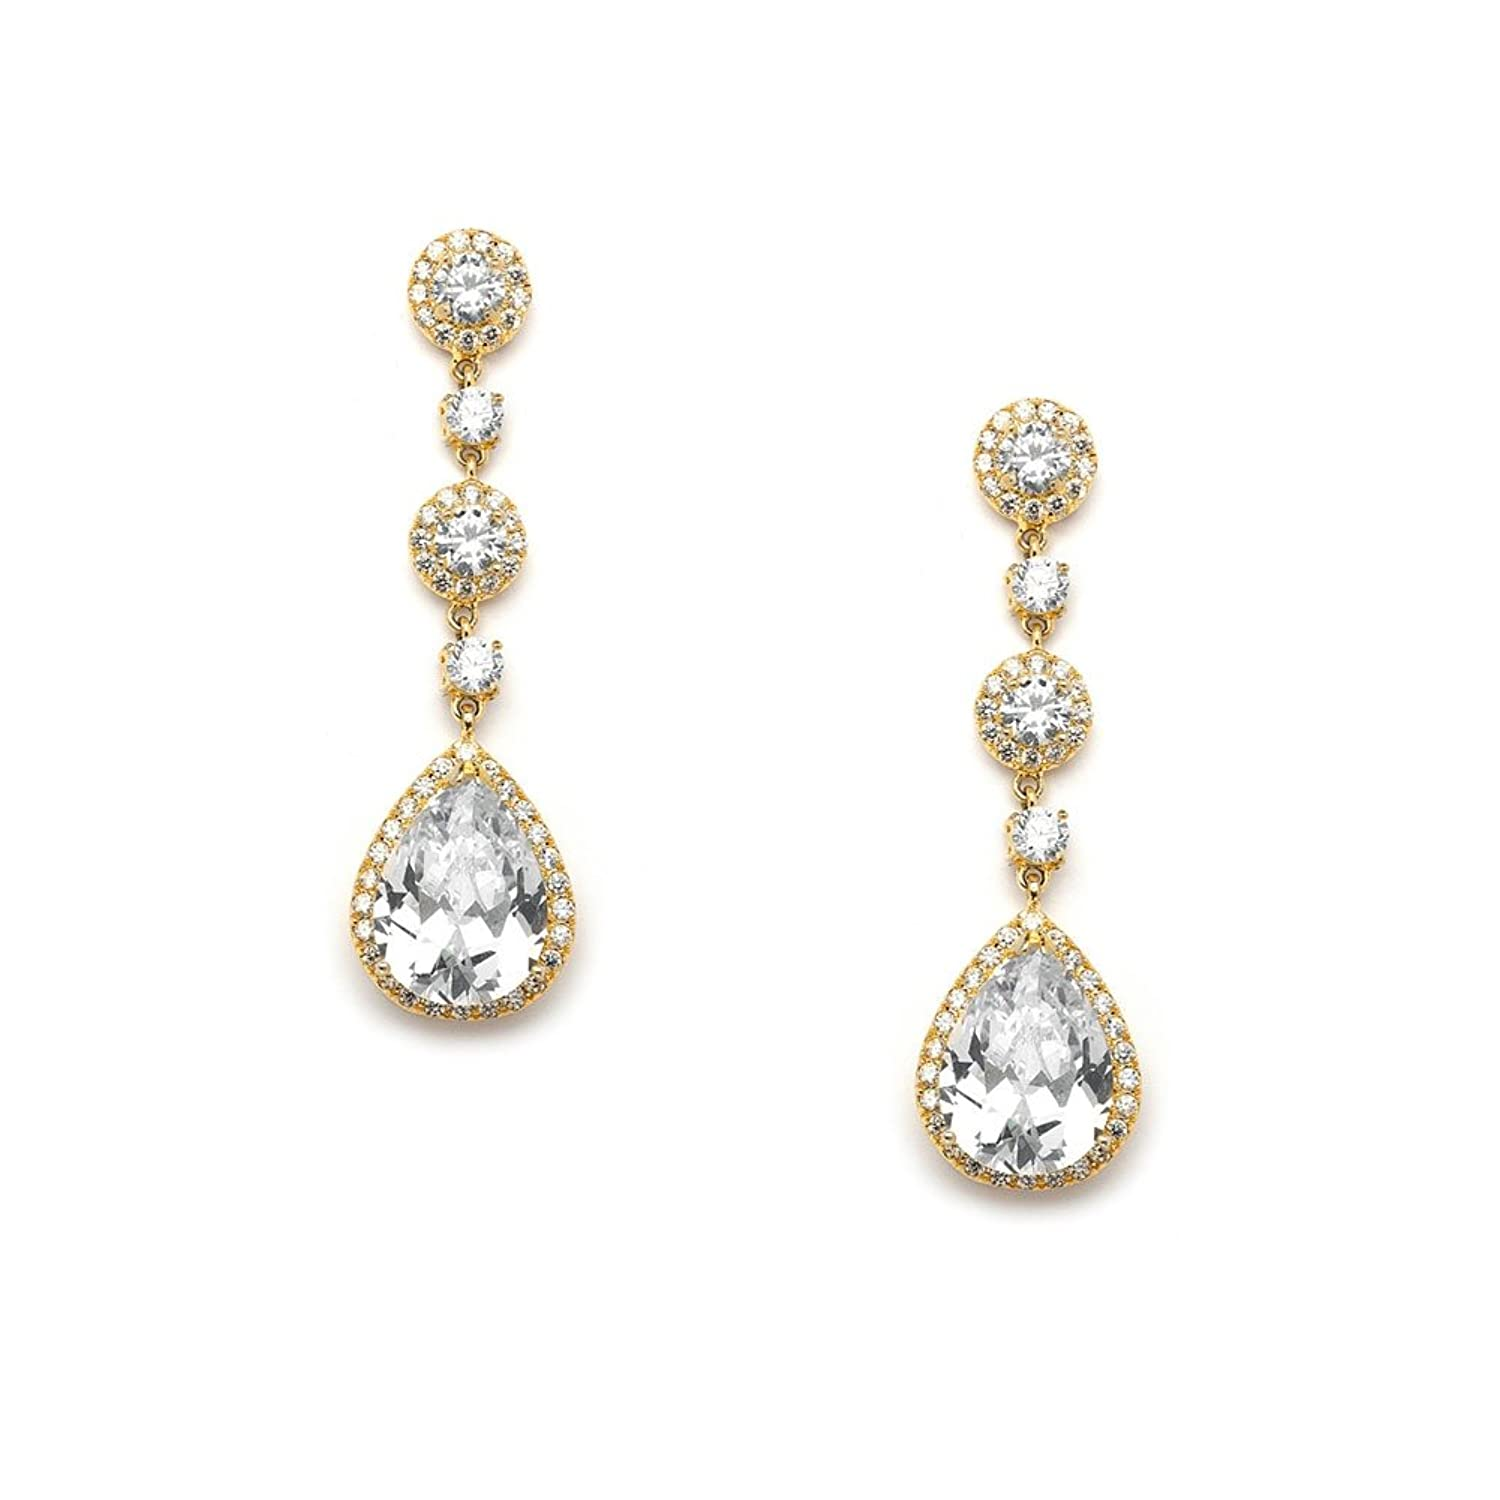 Amazon: Usabride Gold Plated Dangle Earrings Cubic Zirconia Vintage Cz  Bridal Chandelier 1581gold: Jewelry